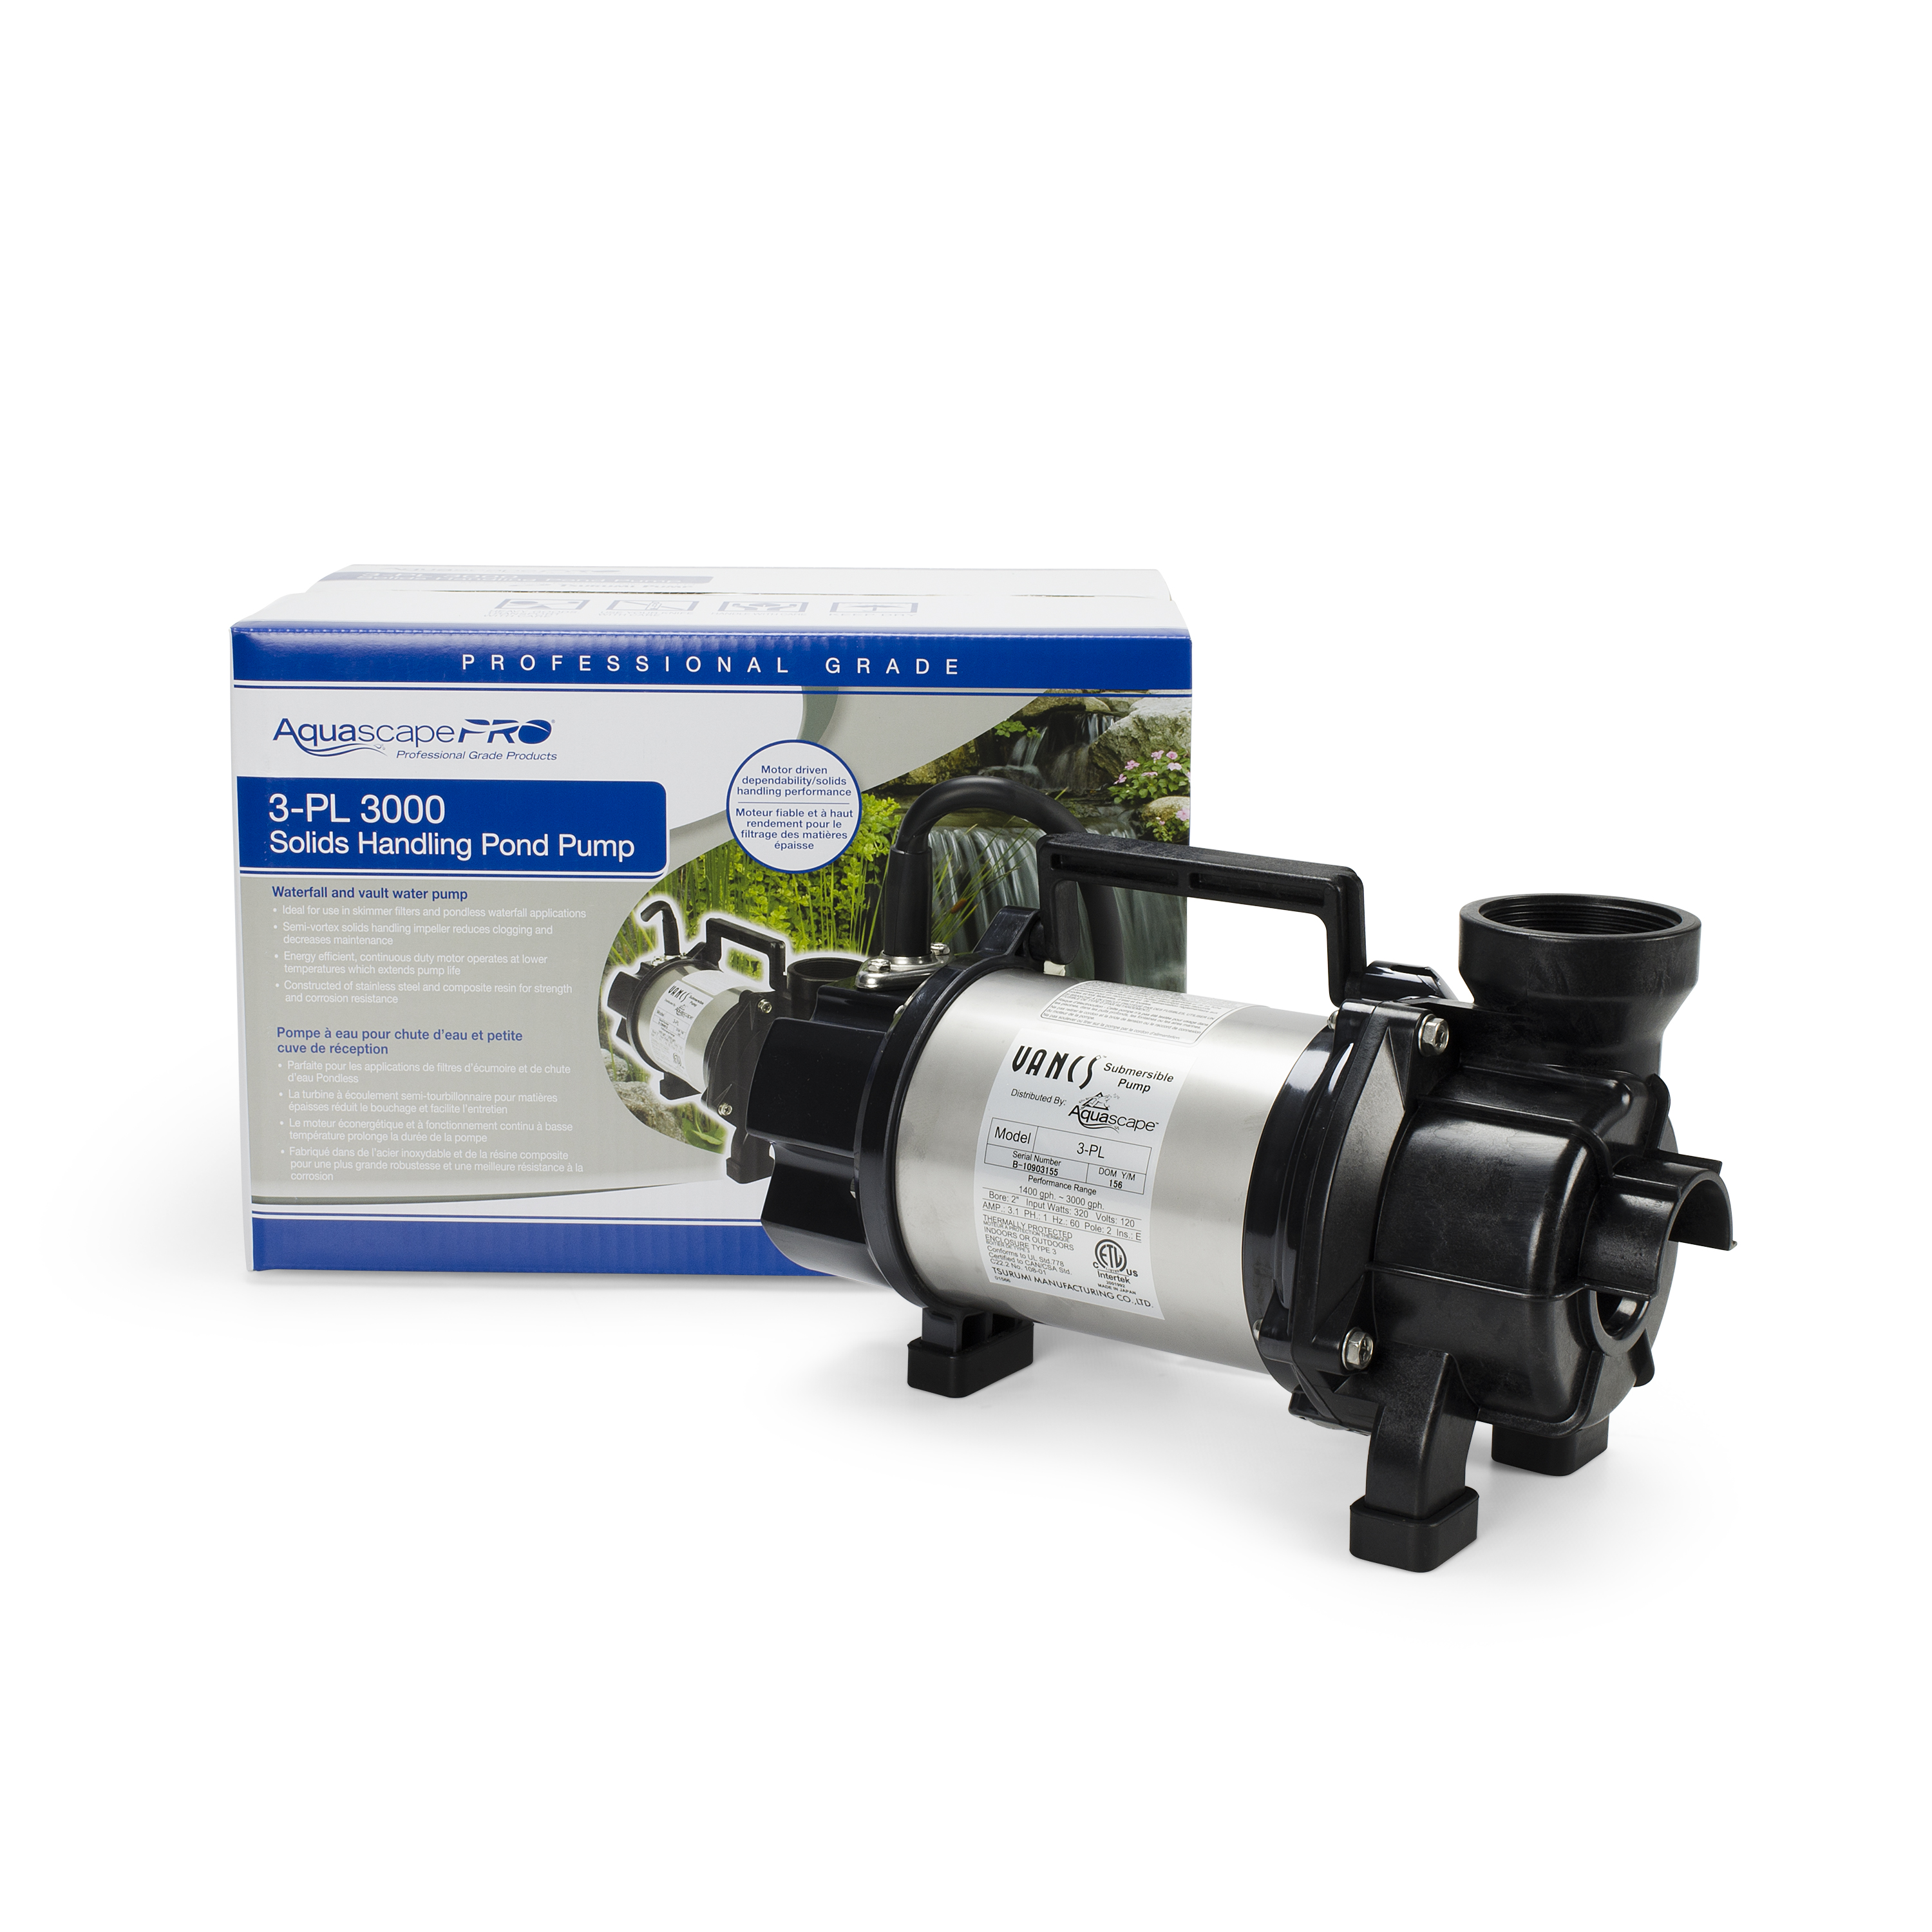 Aquascape PL Series Solids-Handling Pond Pumps (Horizontal)